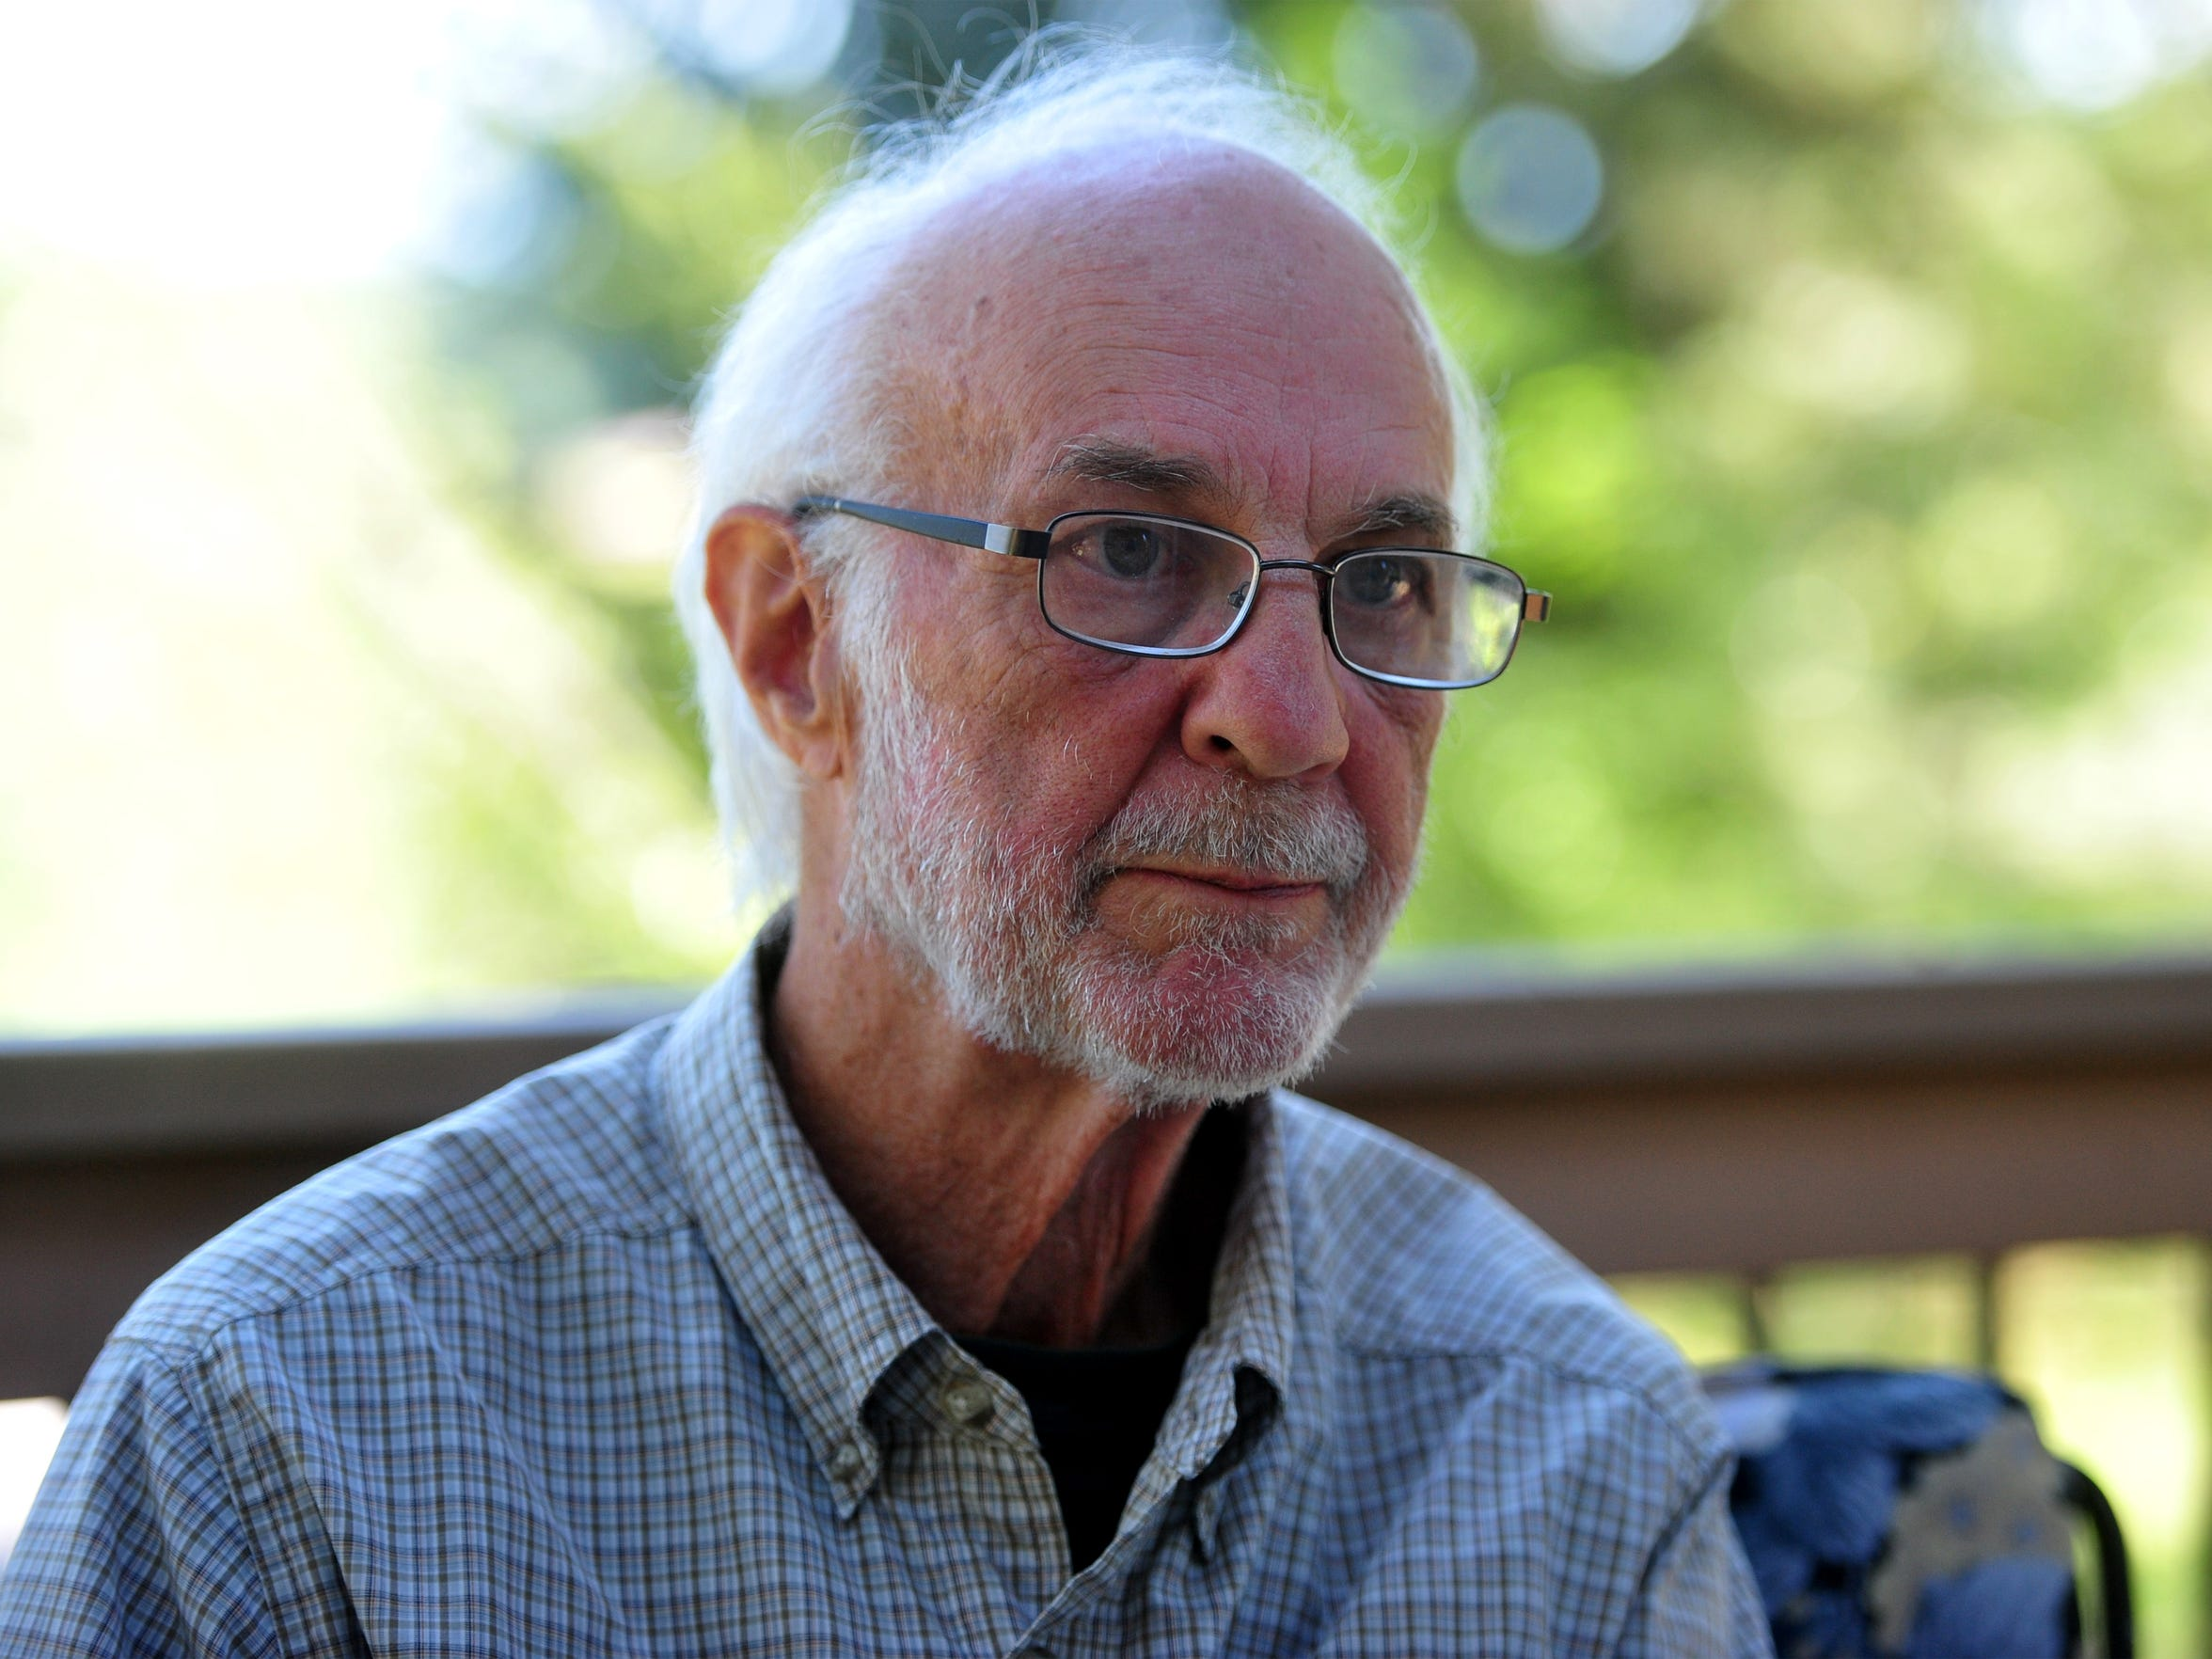 """Bert Gildart, a former ranger at Glacier National Park, responded to the fatal grizzly attack at Trout Lake on Aug. 12, 1967, the """"Night of the Grizzlies""""."""